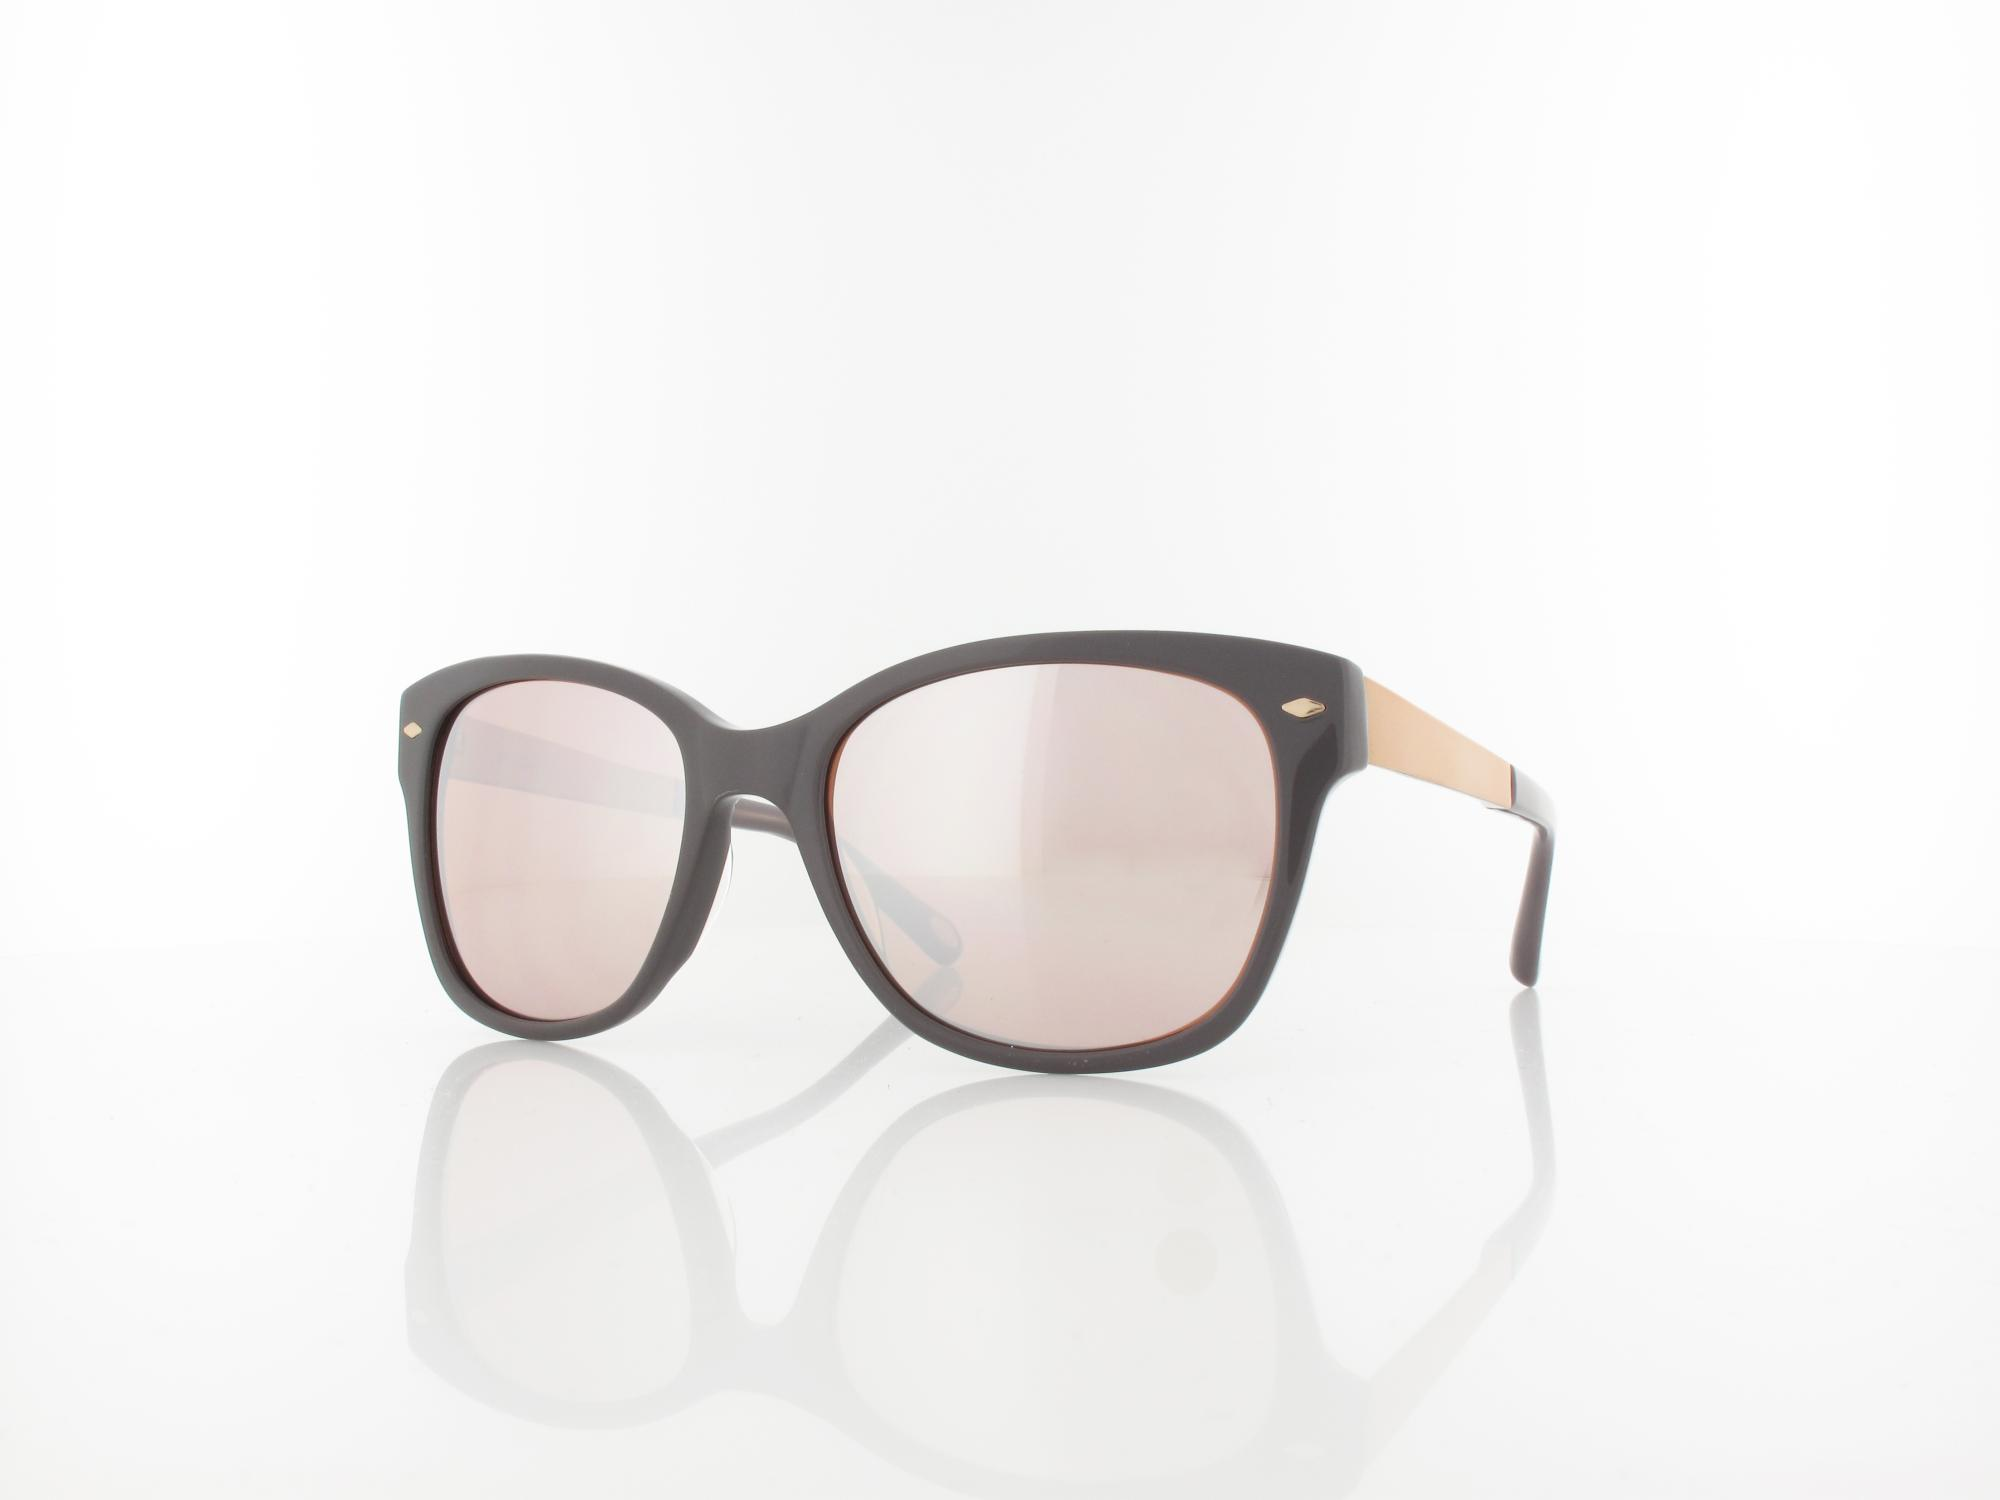 Fossil | FOS 2012/S KL9 55 | grey rose gold / brown silver mirror